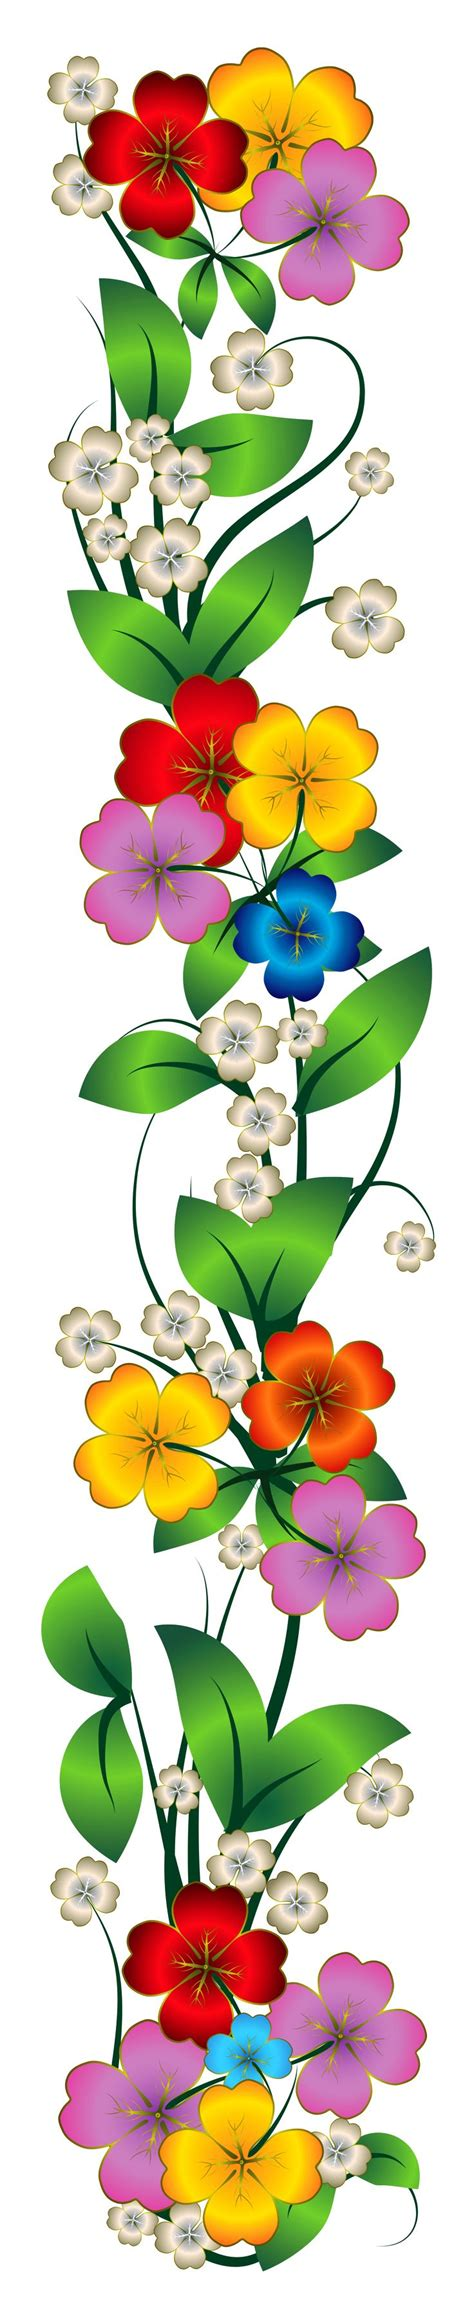 clipart gallery free gallery clipart beautiful flower pencil and in color